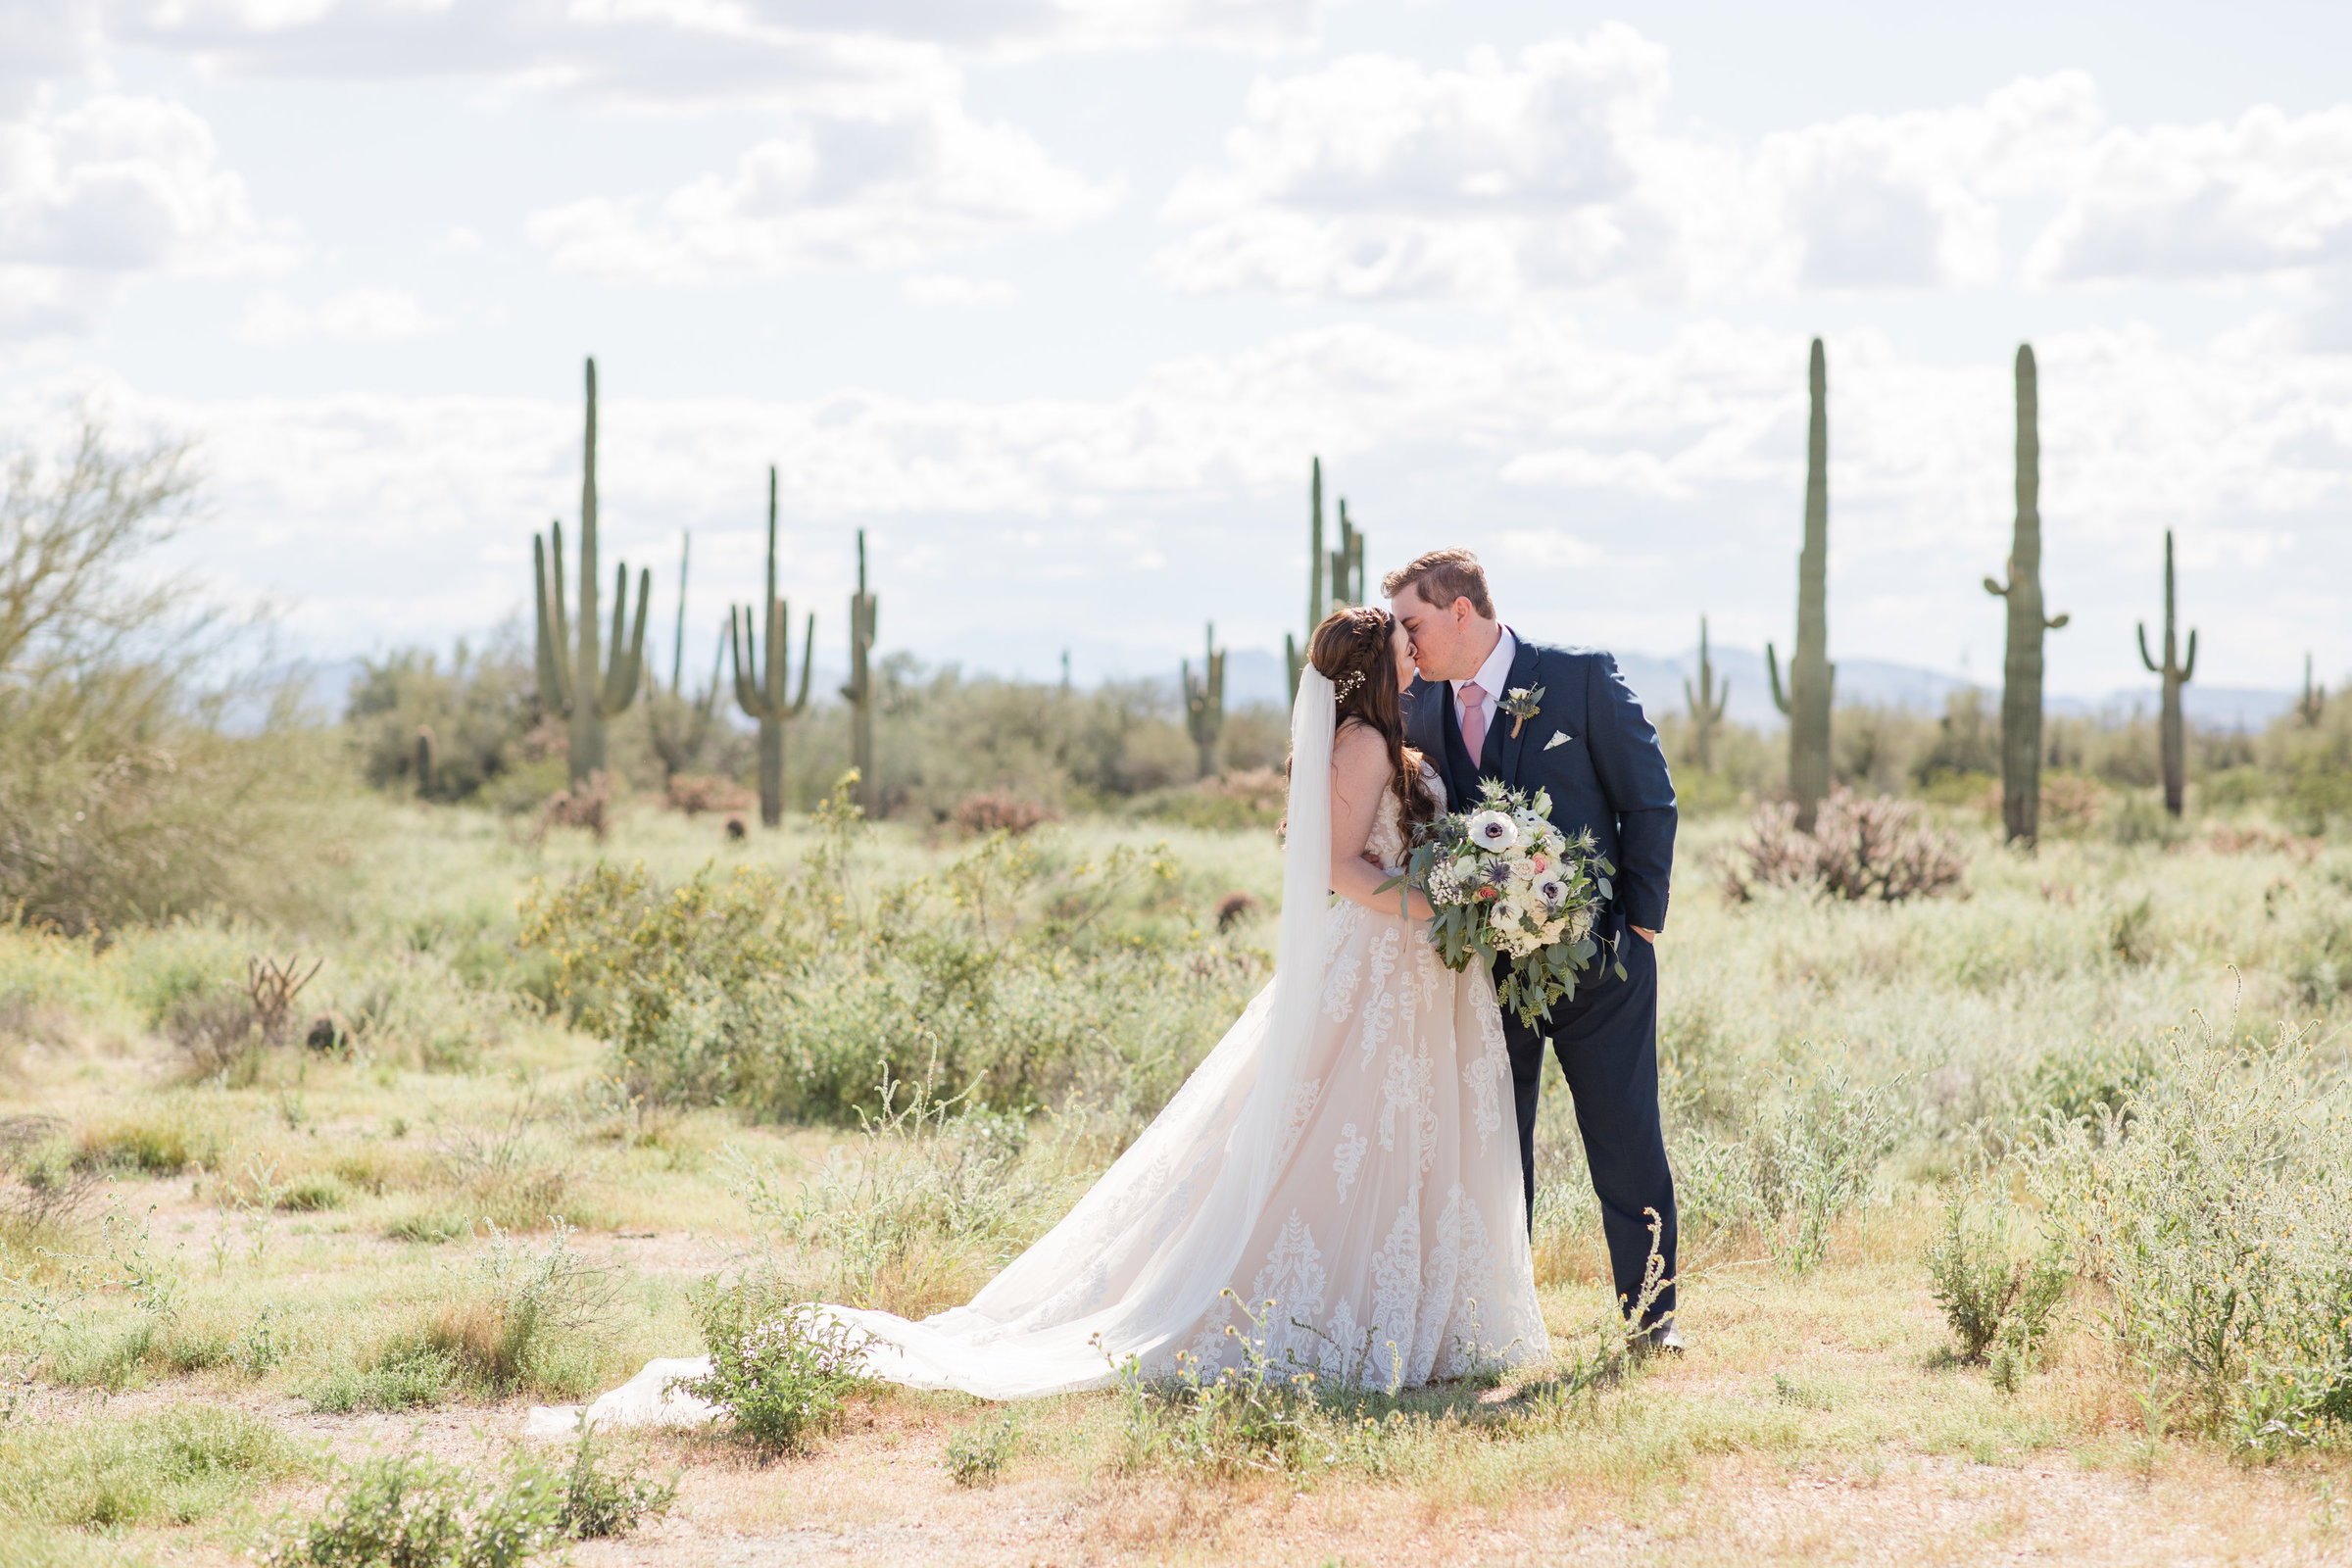 Photo of bride and groom at their desert wedding